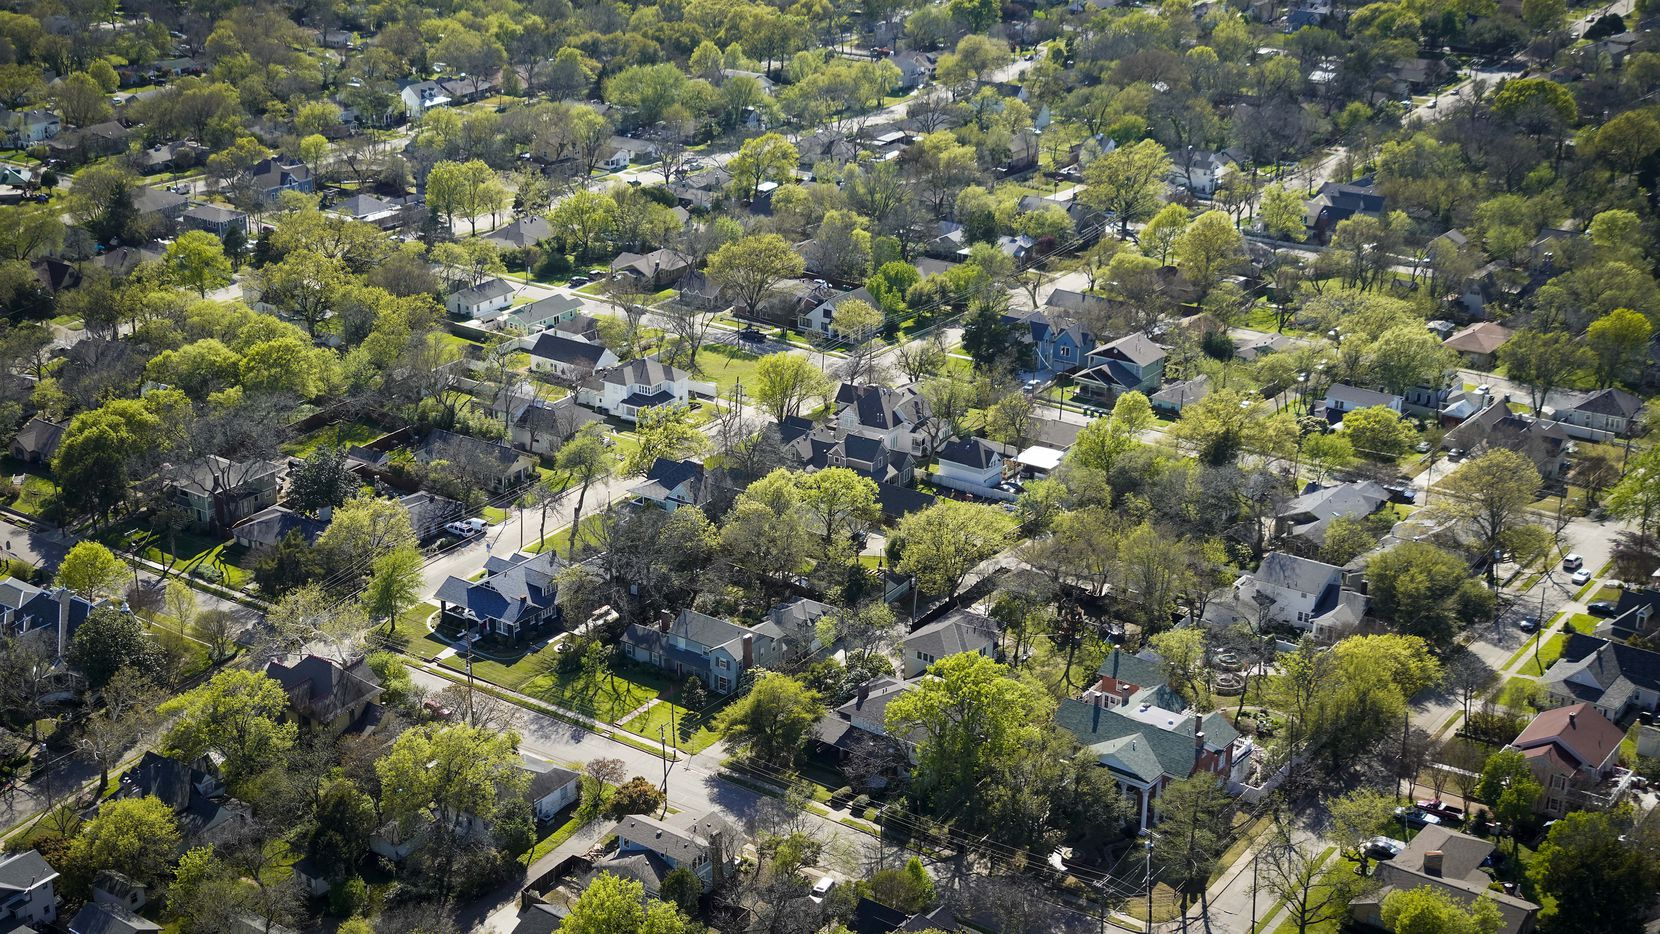 Aerial view of residential neighborhood near downtown McKinney, Texas on Tuesday, March 24, 2020.